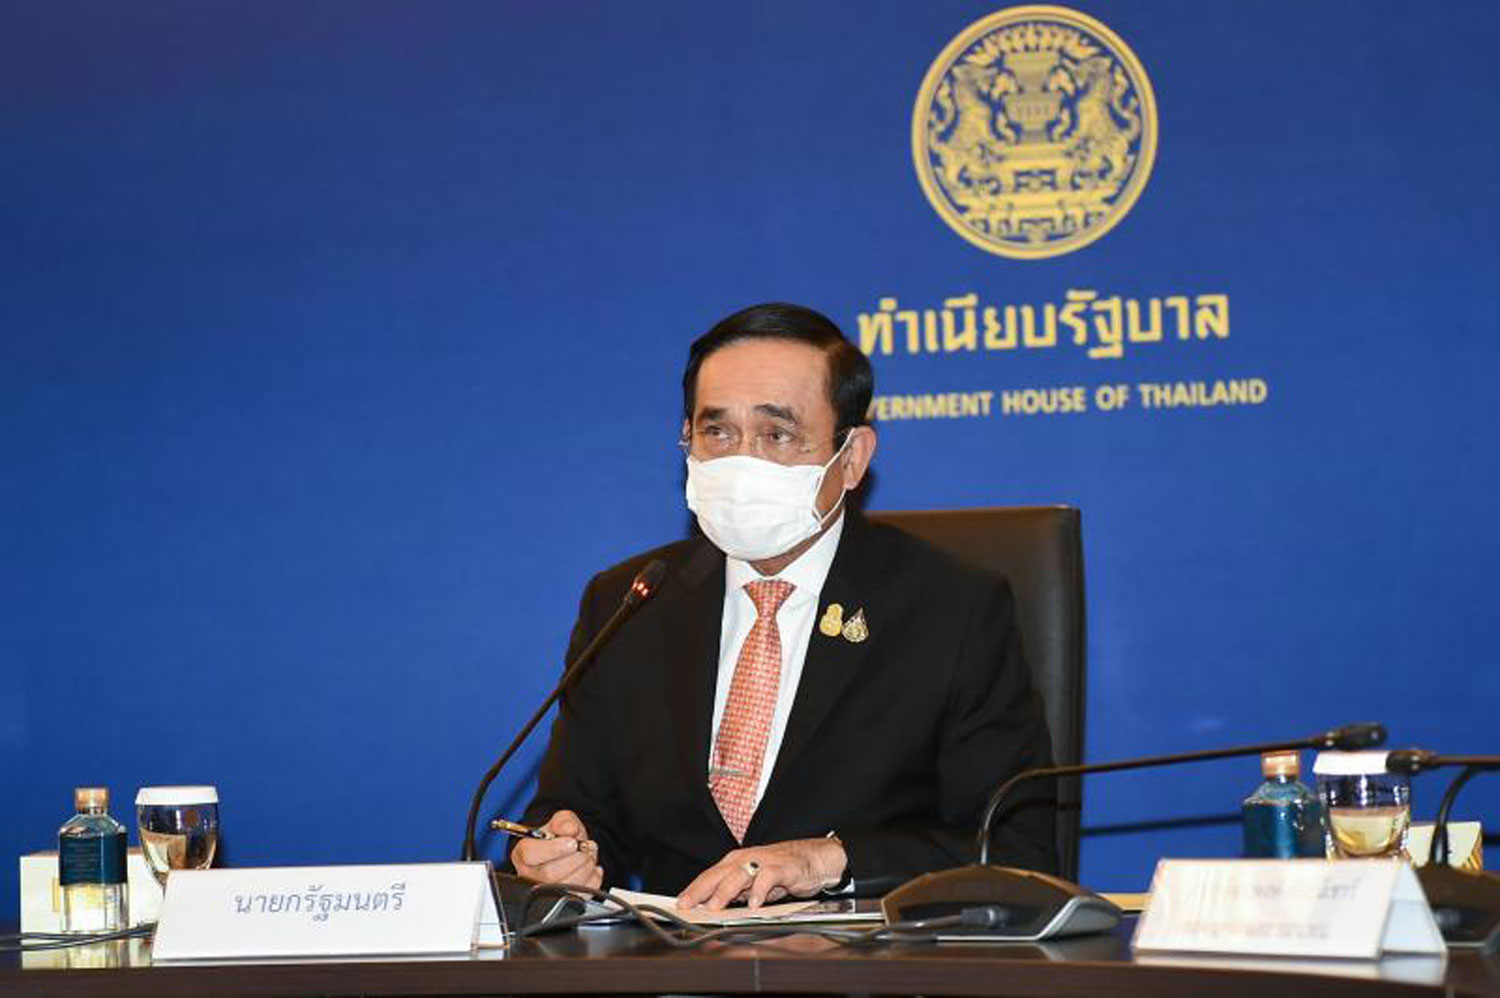 Prime Minister Prayut Chan-o-cha chairs a meeting with representatives of the Thai Chamber of Commerce and company executives tackle the Covid-19 pandemic at Government House on July 21 via video conference. (Government House photo)